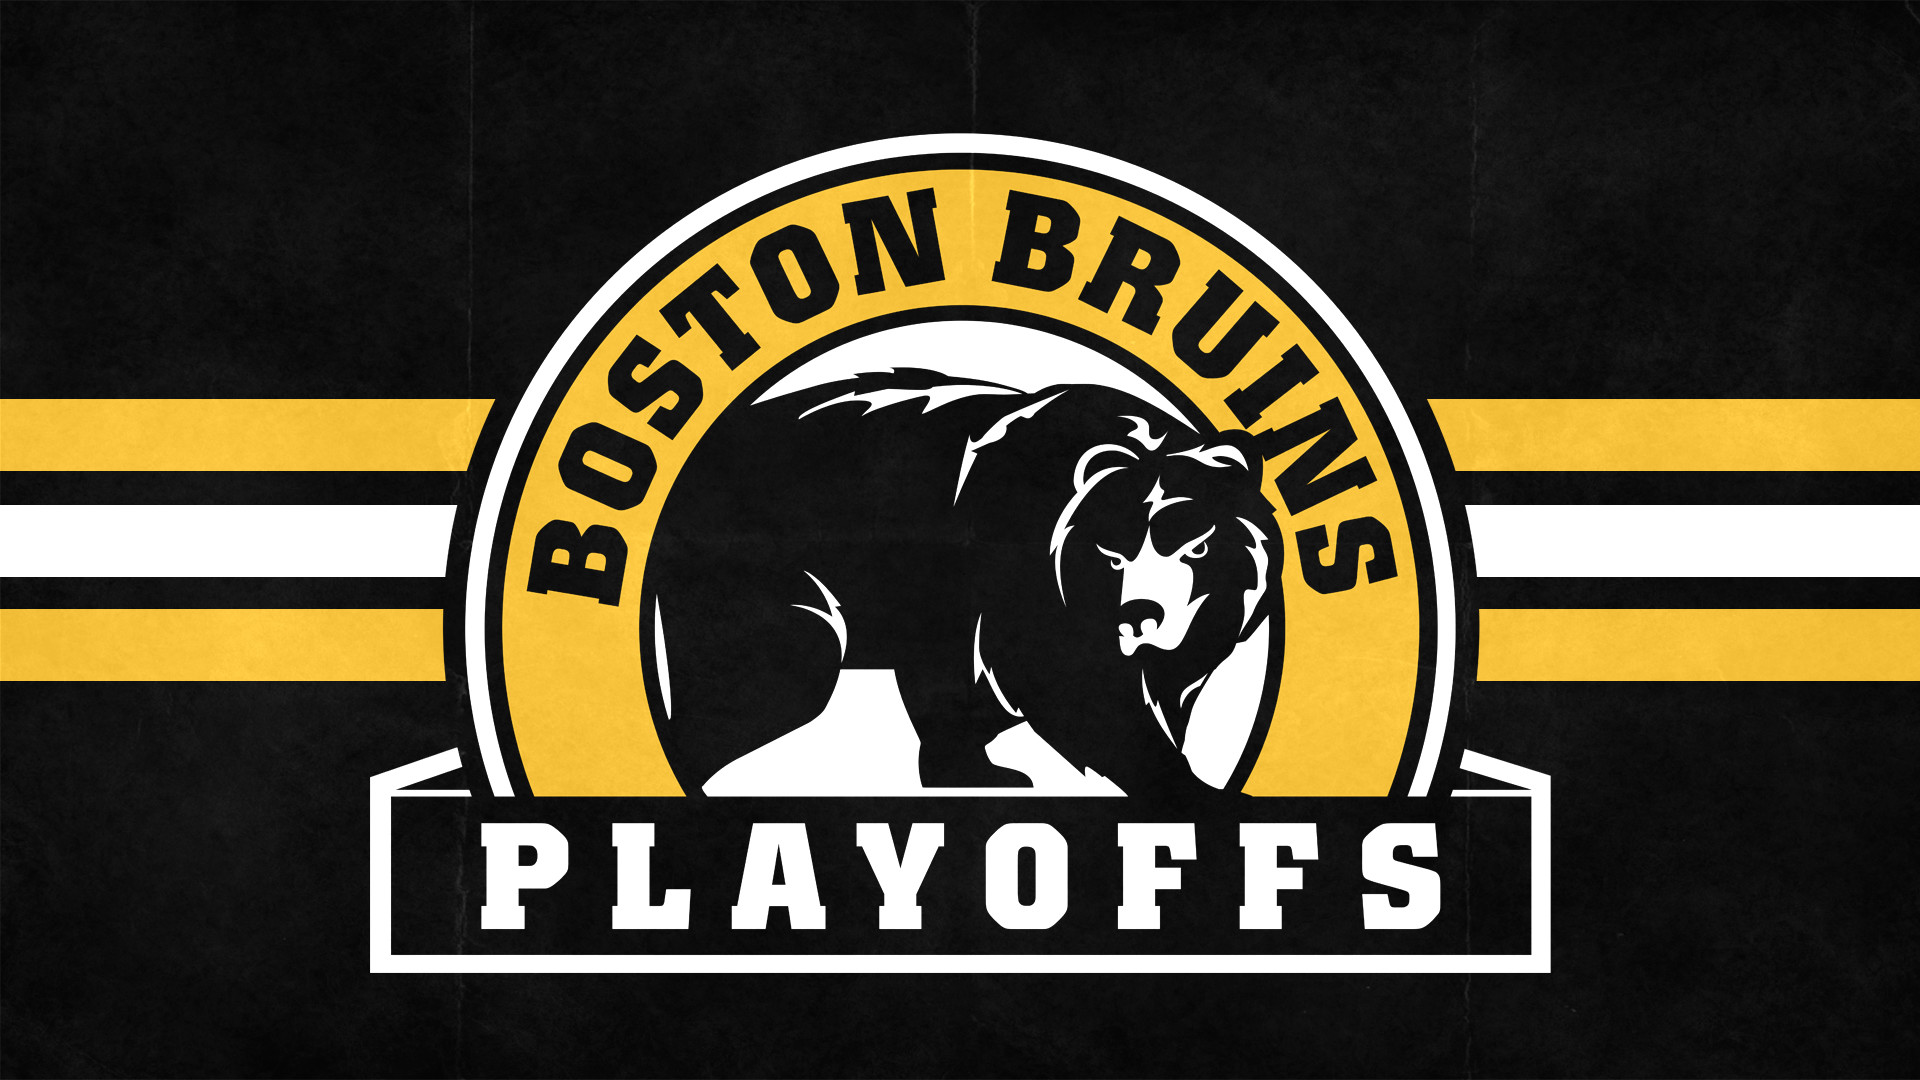 1920x1080 Boston Bruins Wallpapers #20367, HD Image () for Gadget .